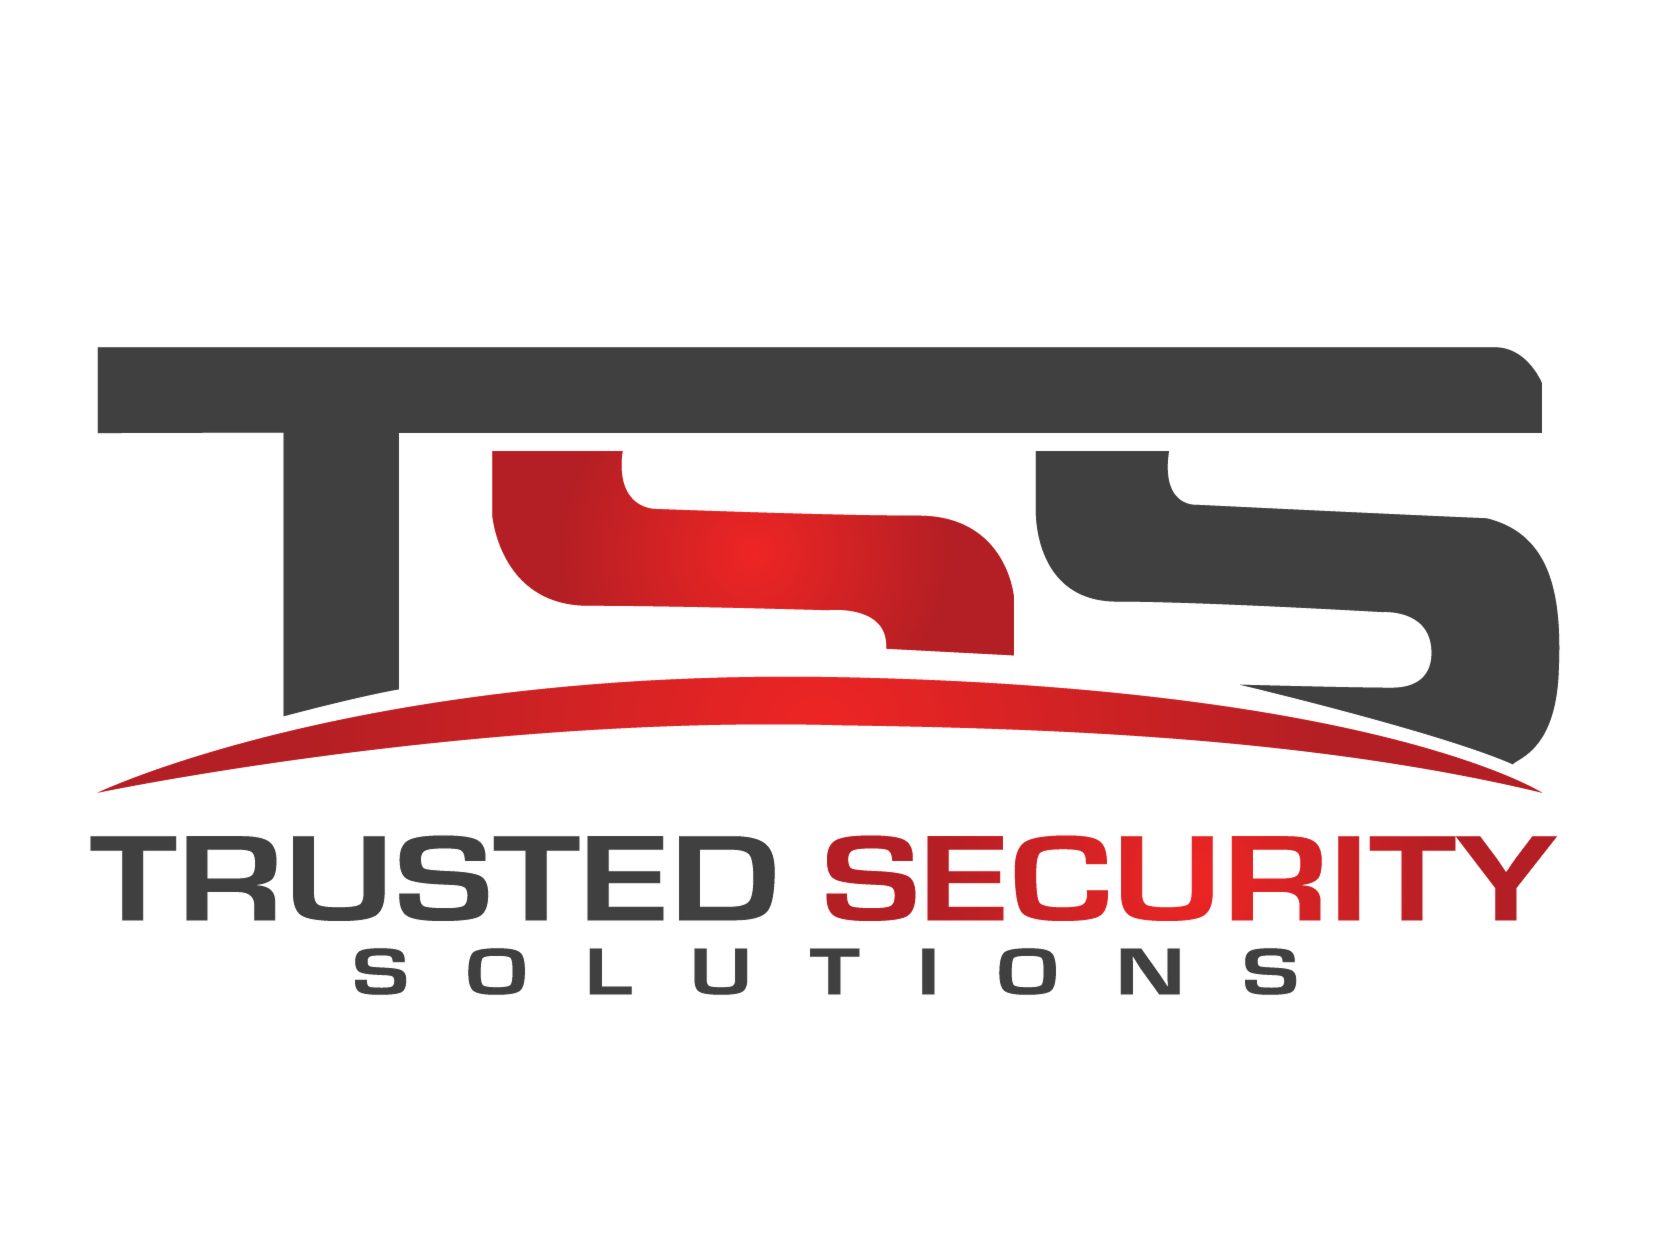 Trusted Security Solutions